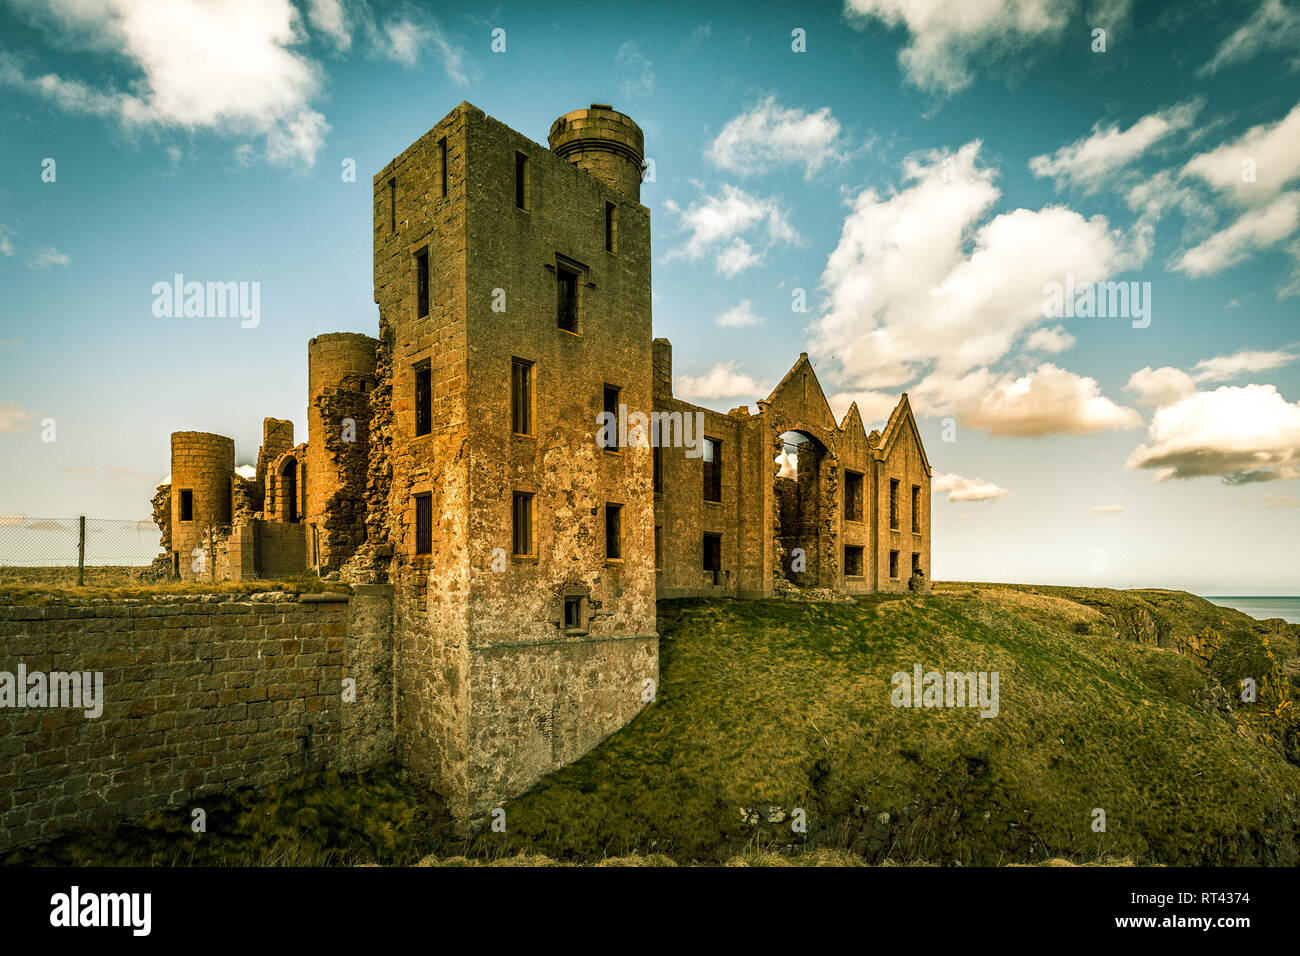 Slains Castle, also known as New Slains Castle, is a ruined castle in Aberdeenshire, Scotland. - Stock Image